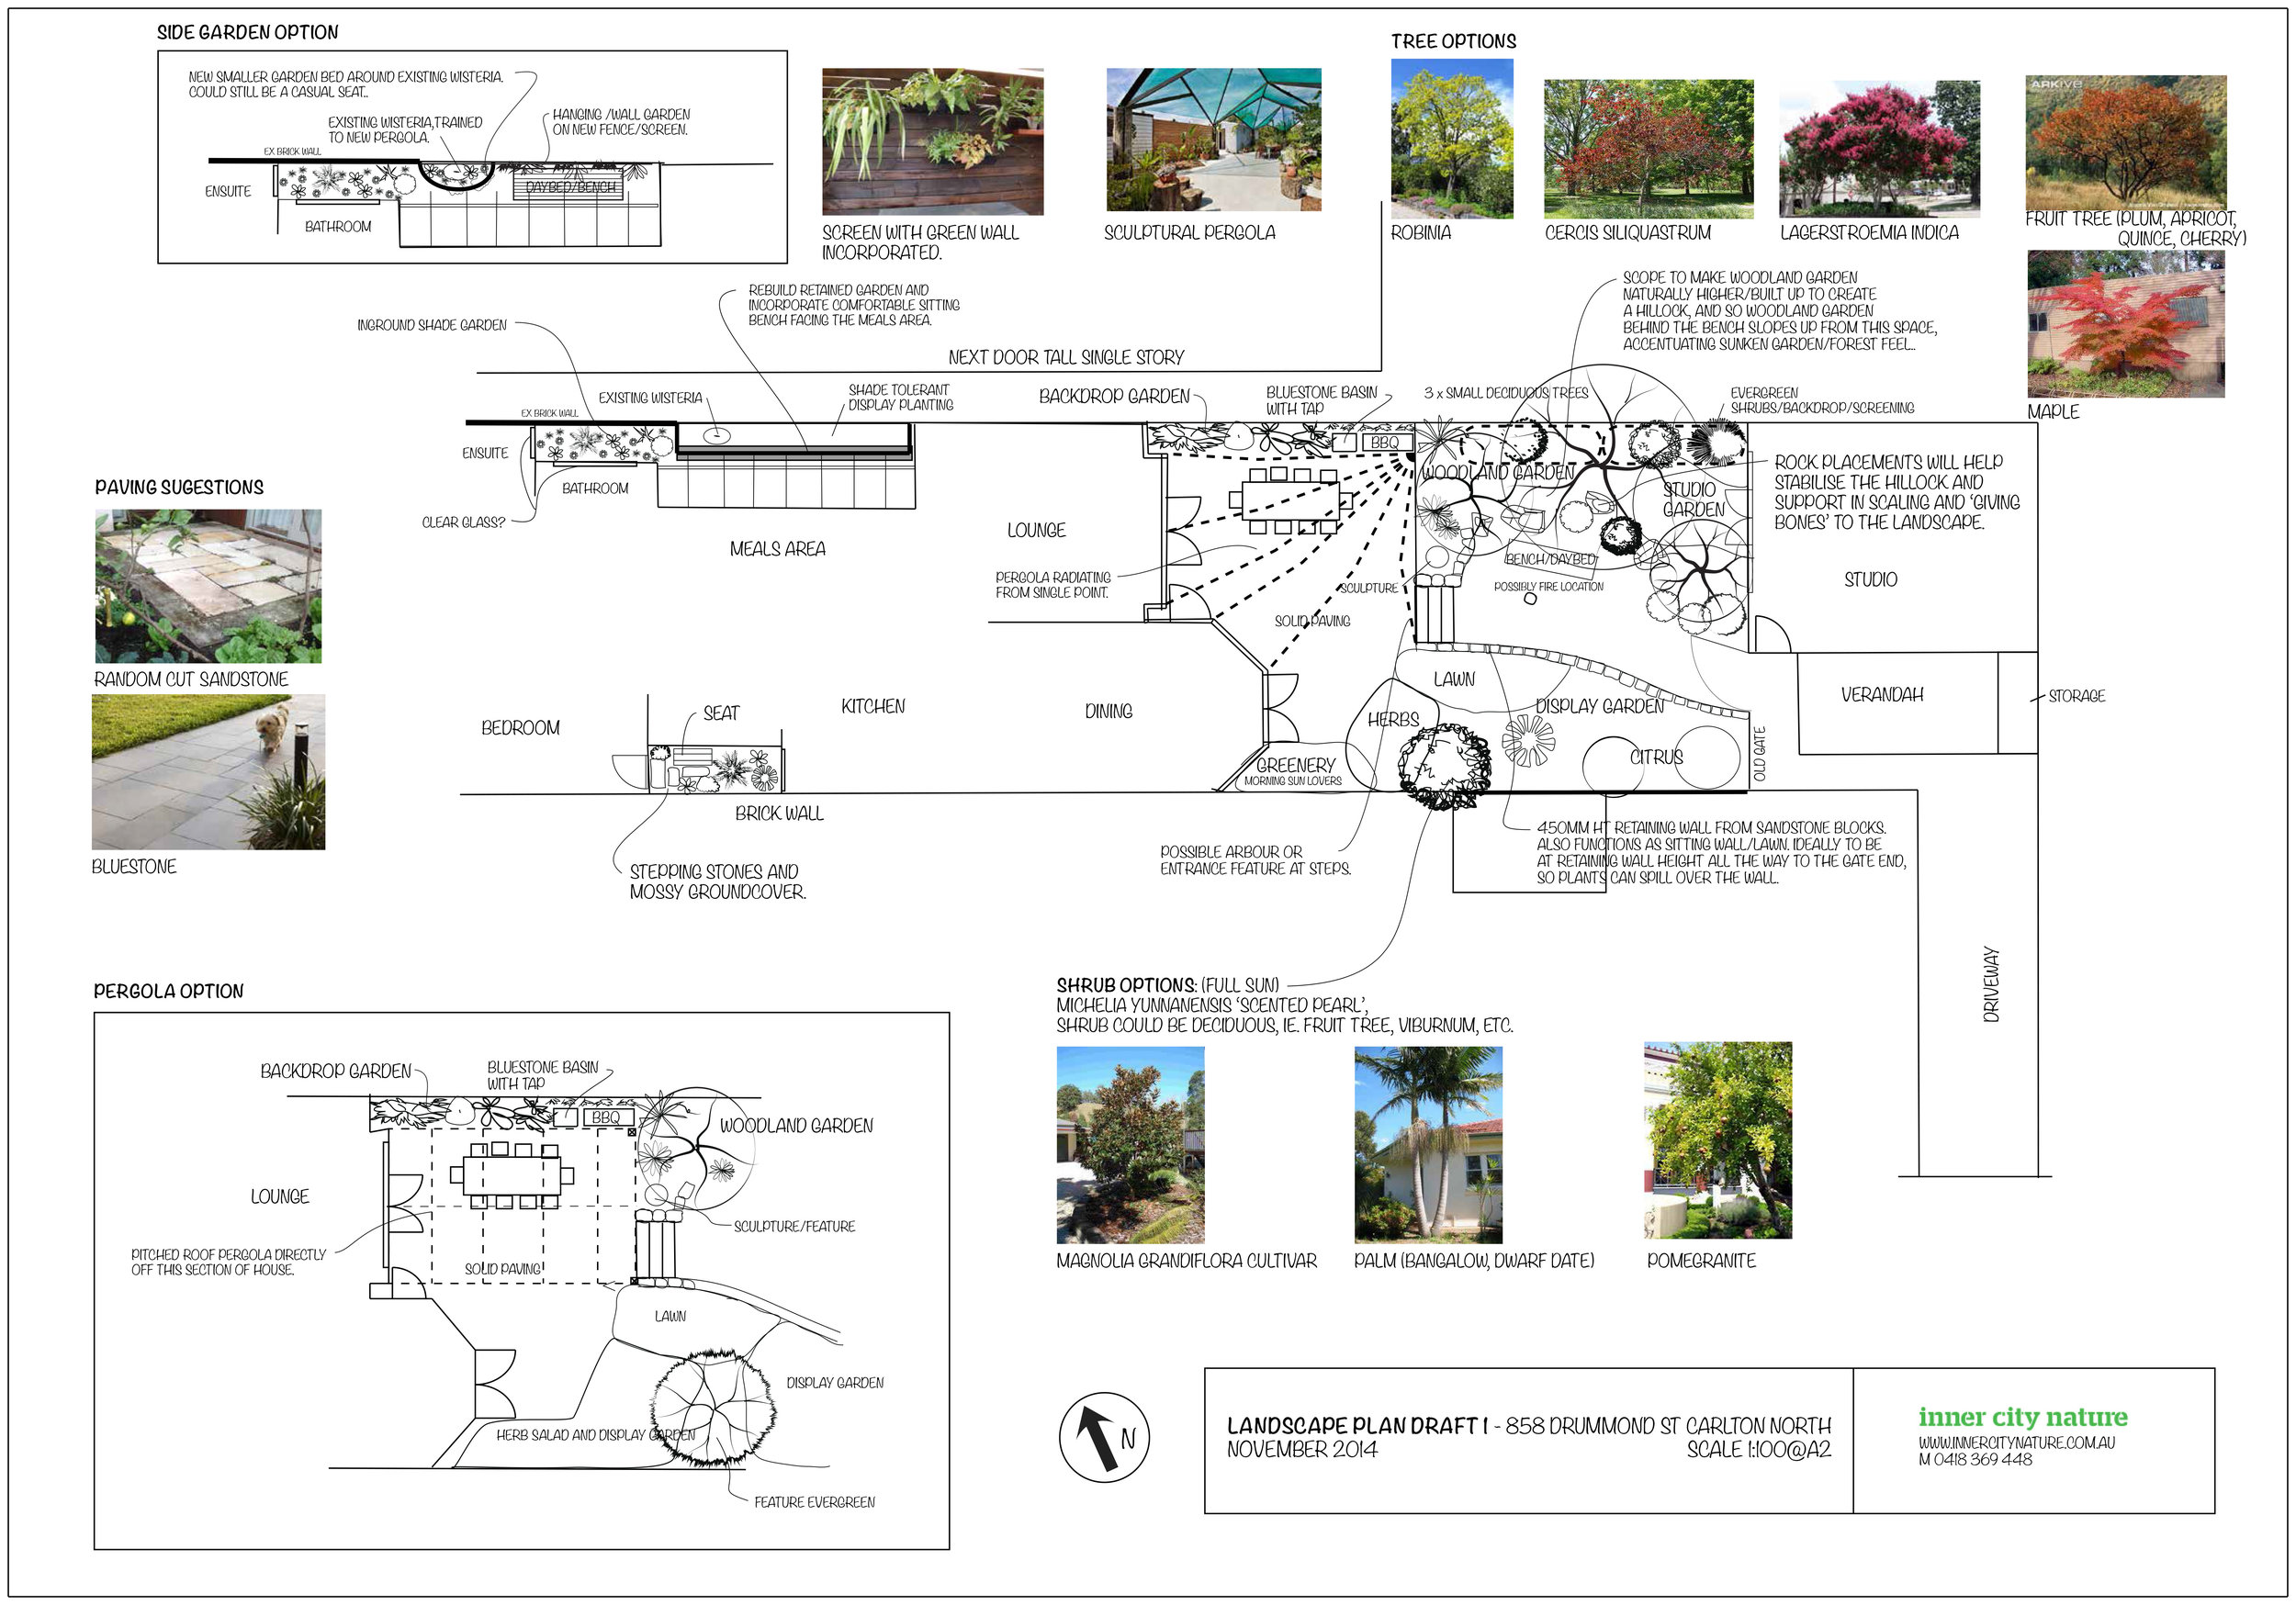 LANDSCAPE PLAN DRAFT2-1.jpg